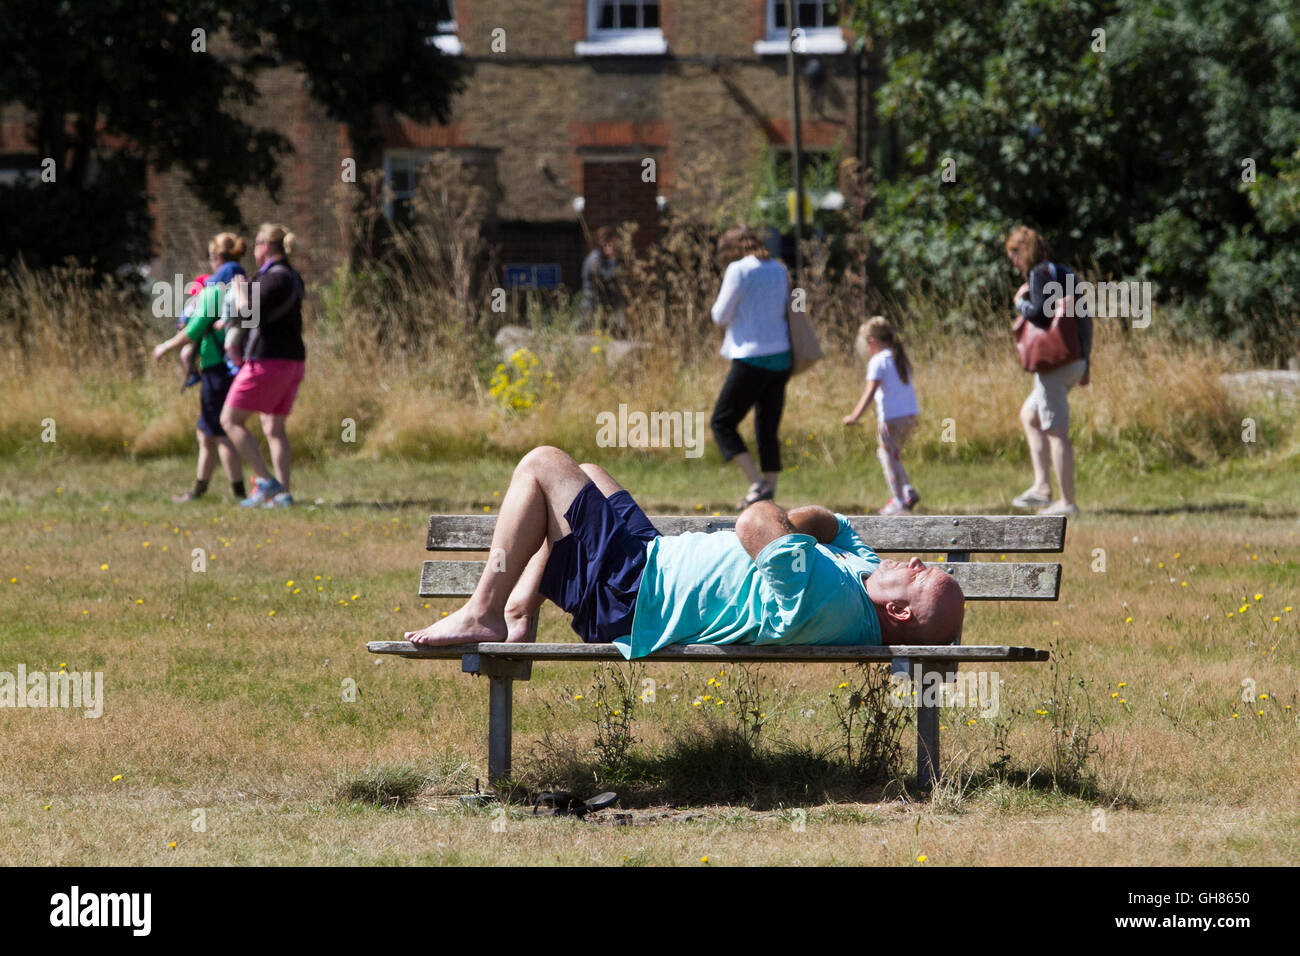 London, UK. 9th August 2016. A man snoozes on a bench in the sunshine  on Wimbledon Common Credit:  amer ghazzal/Alamy - Stock Image